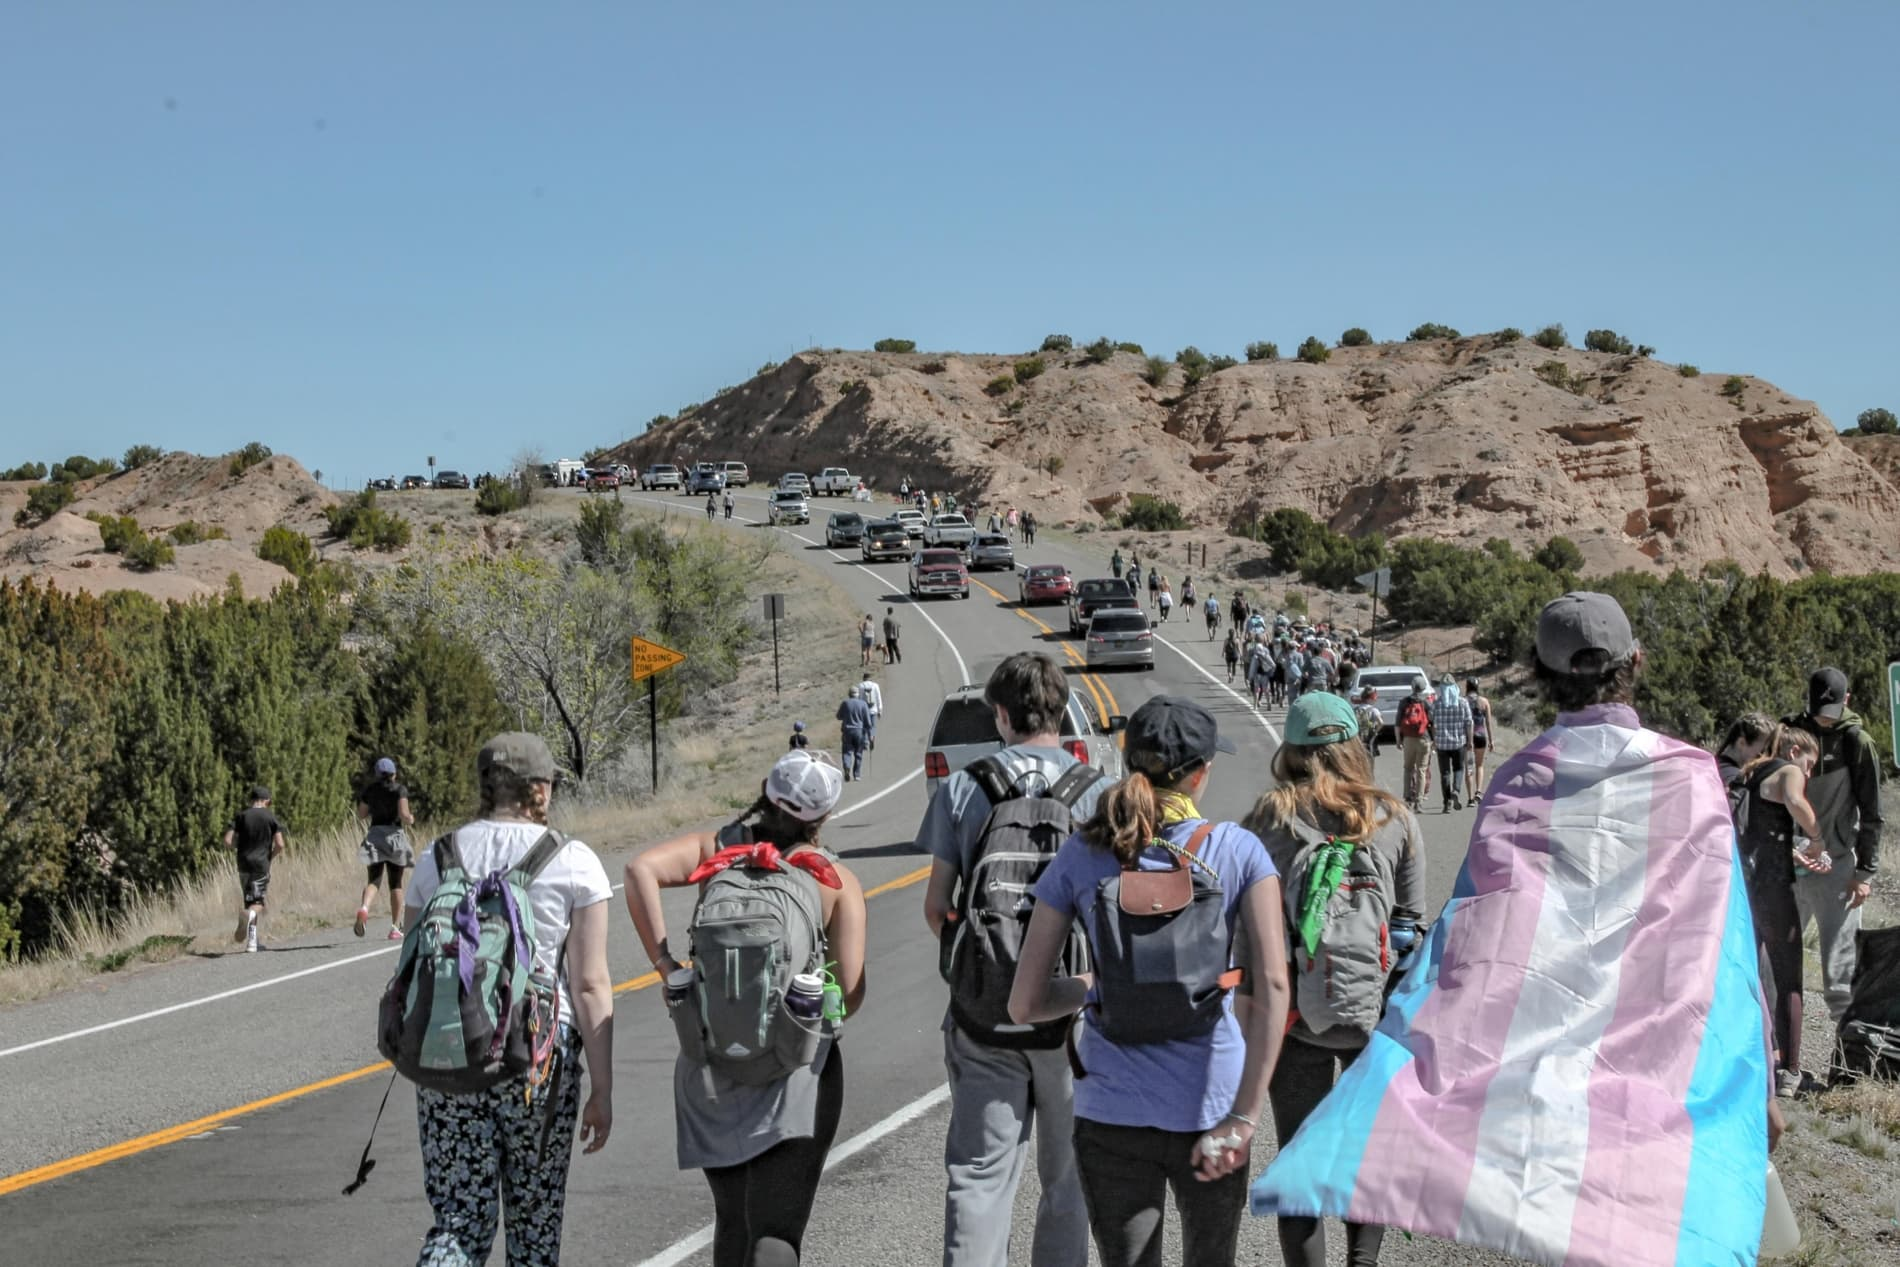 Church youth group travel up a road with a youth carrying flag of transgender symbol